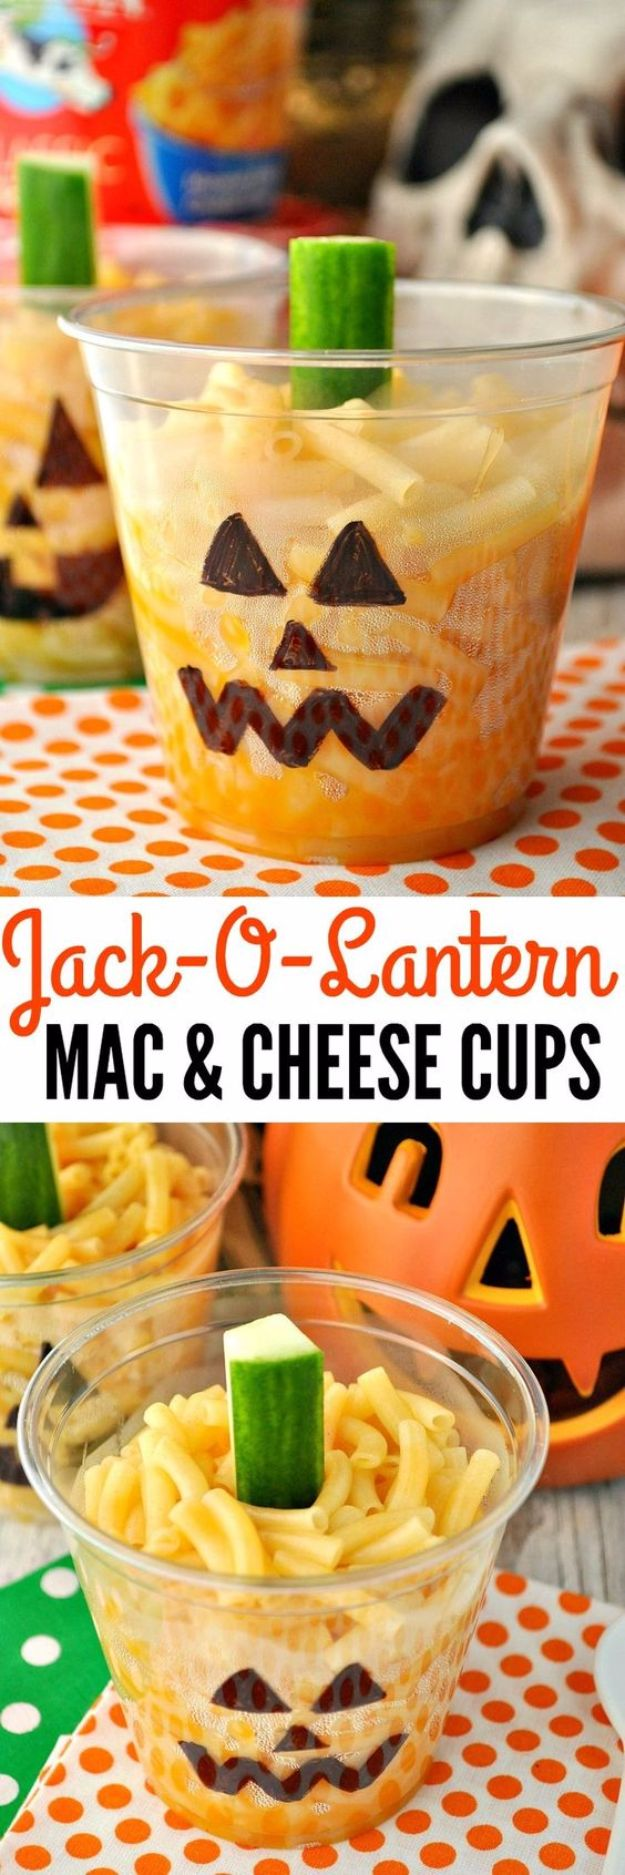 Best Halloween Party Snacks - Jack-O-Lantern Mac and Cheese Cups - Healthy Ideas for Kids for School, Teens and Adults - Easy and Quick Recipes and Idea for Dips, Chips, Spooky Cookies and Treats - Appetizers and Finger Foods Made With Vegetables, No Candy, Cheap Food, Scary DIY Party Foods With Step by Step Tutorials http://diyjoy.com/halloween-party-snacks